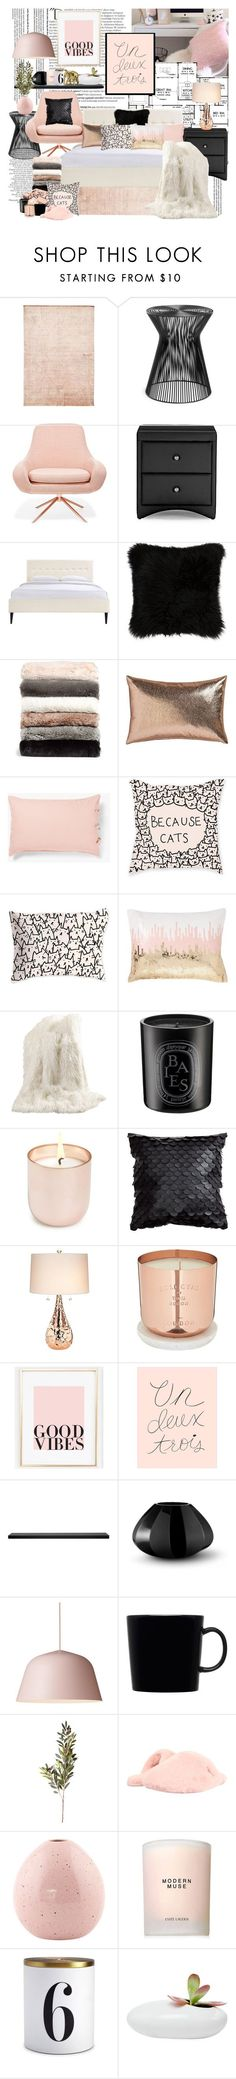 """""""good vibes bedroom"""" by missoumiss on Polyvore featuring interior, interiors, interior design, home, home decor, interior decorating, Balmain, Baxton Studio, Steel   Lark and Natural by Lifestyle Group"""